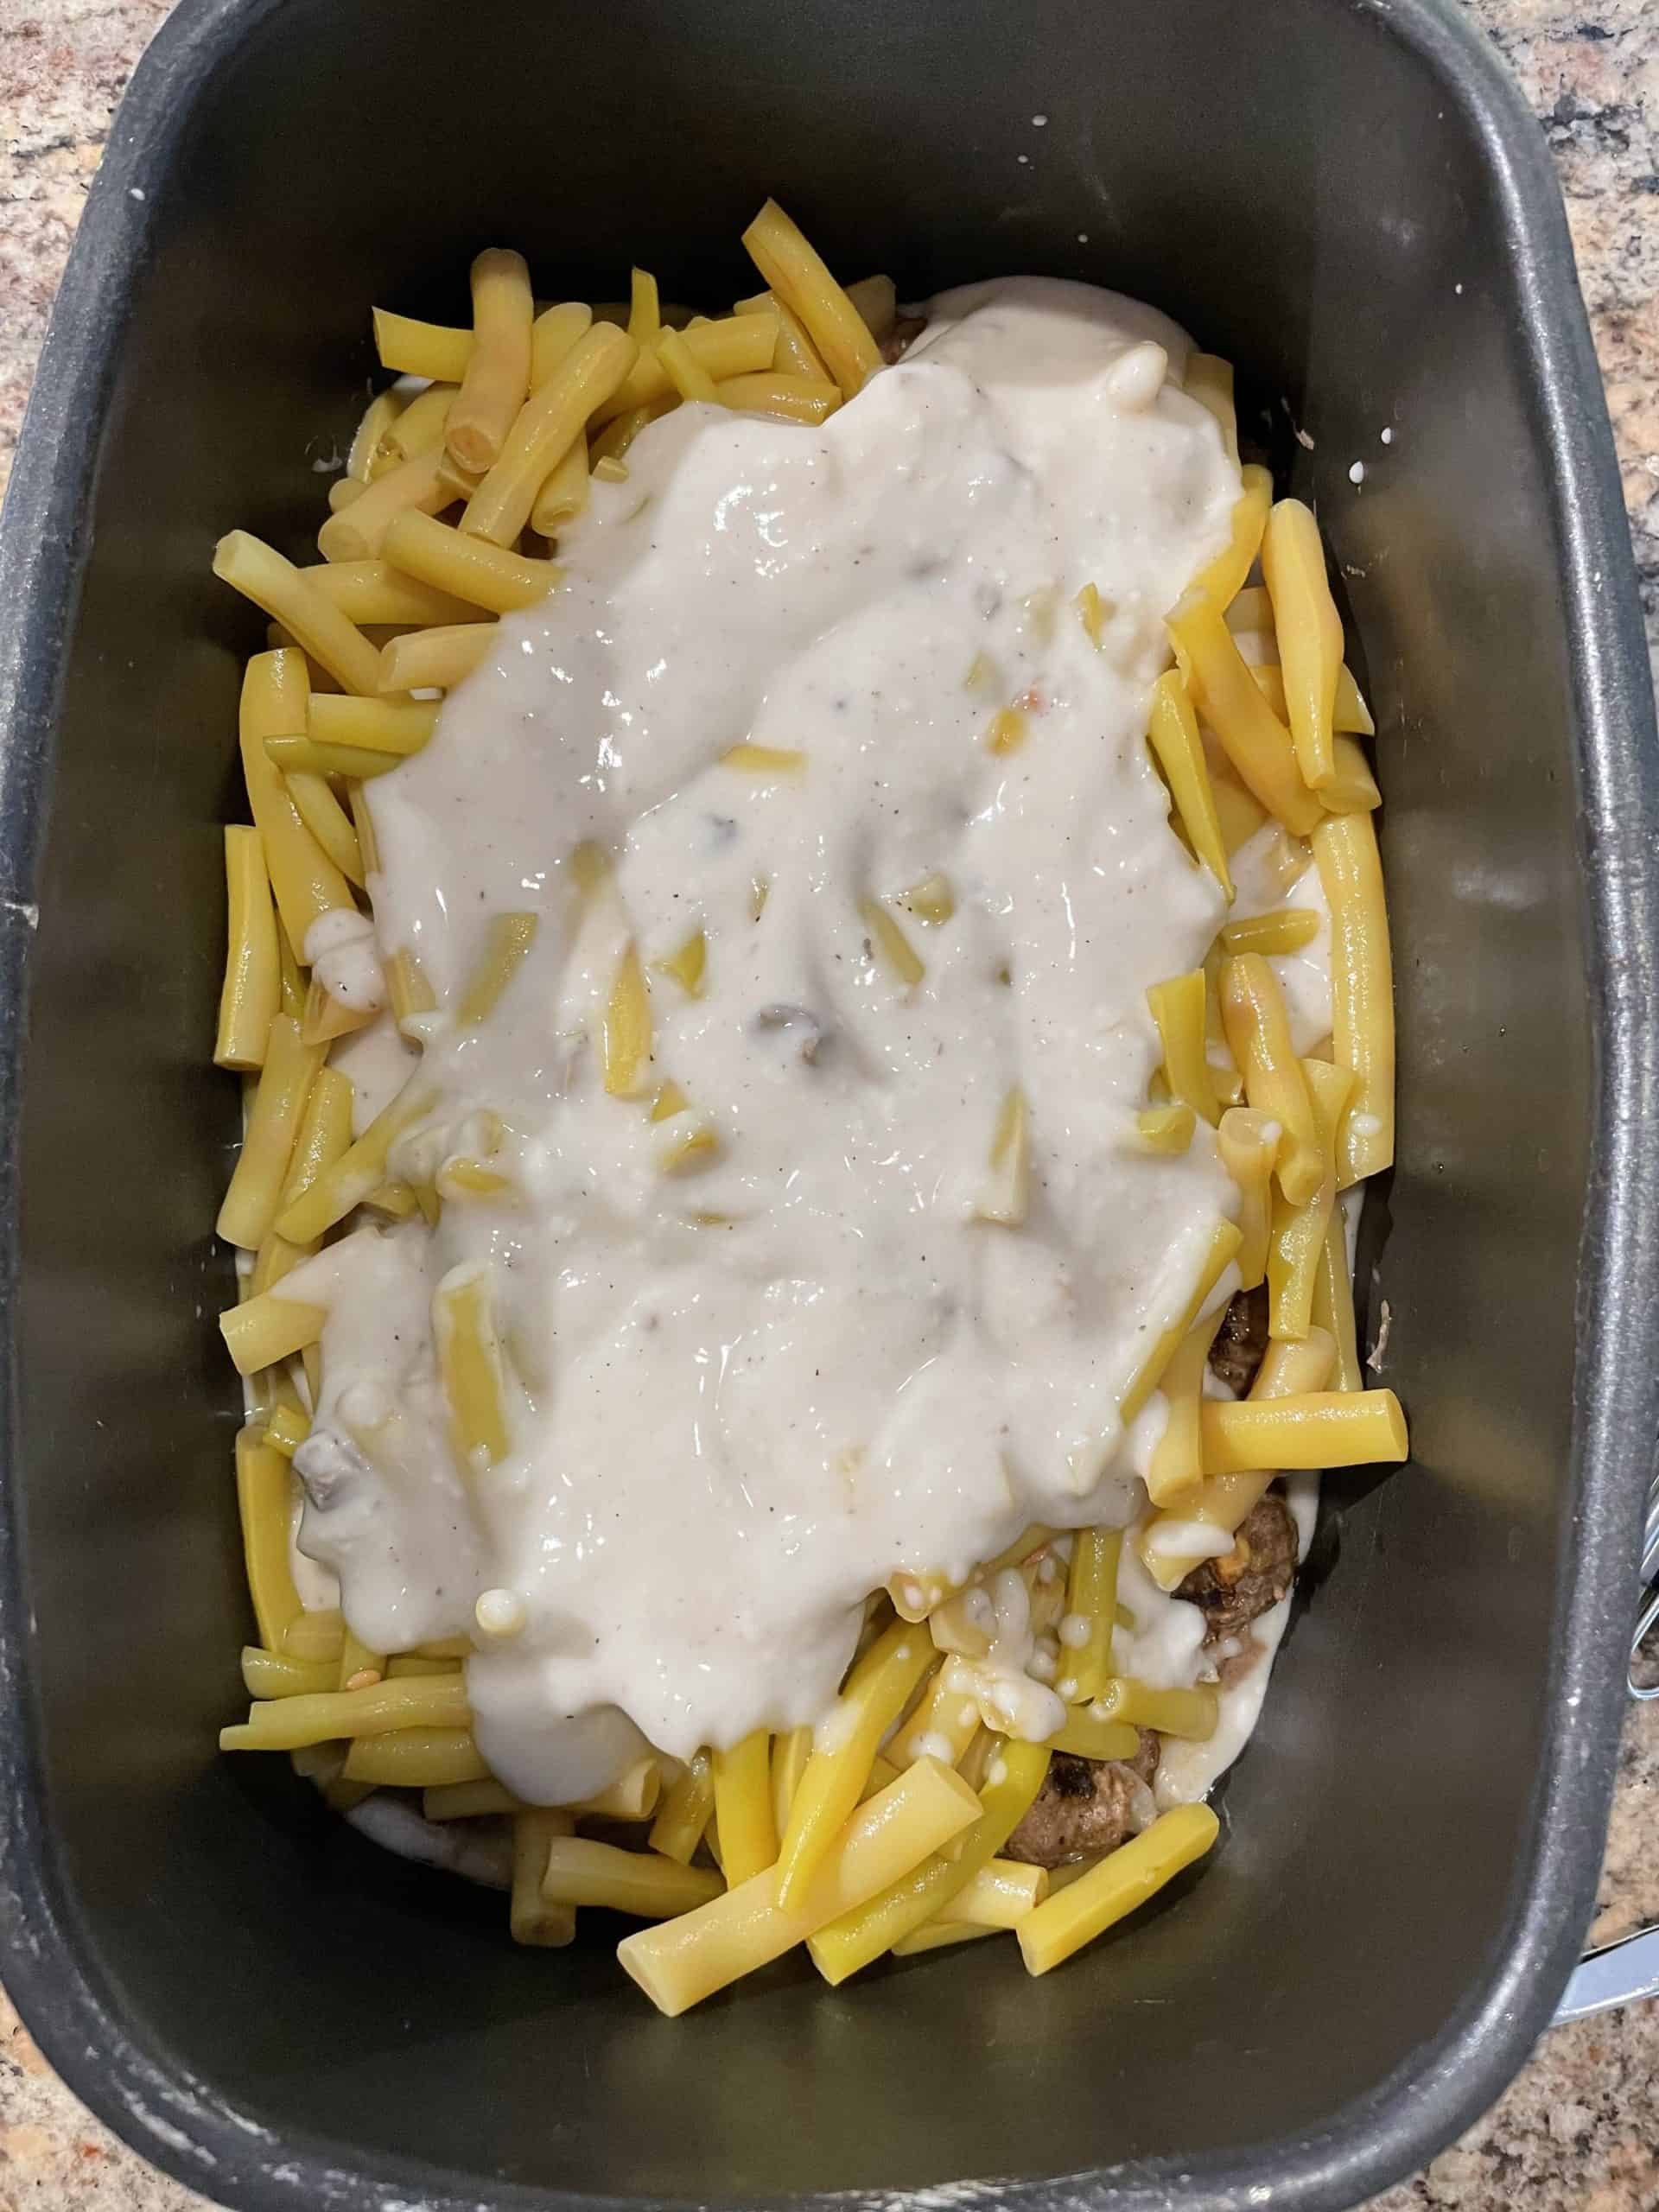 Yellow beans topped with cream of mushroom soup.